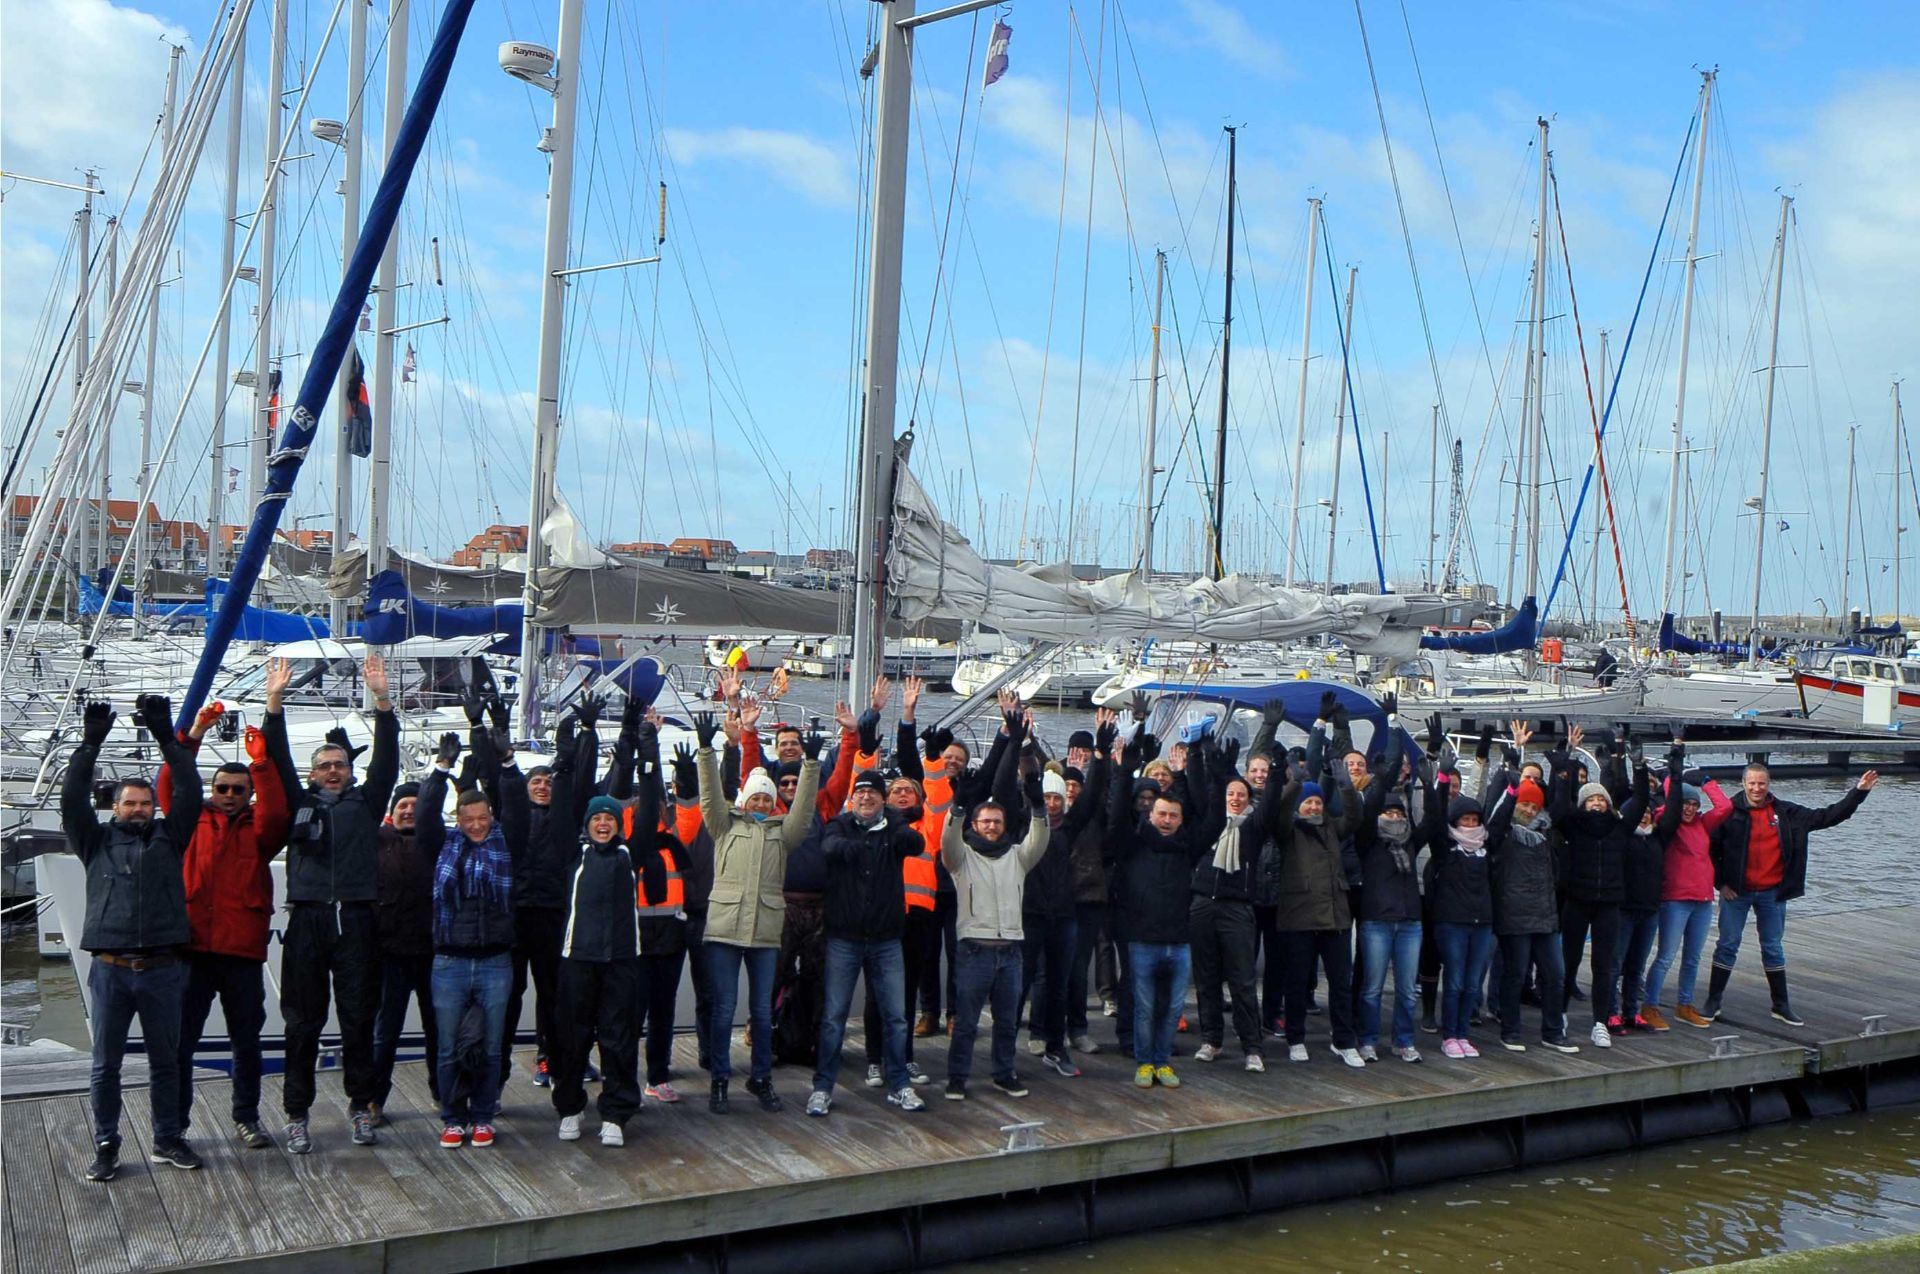 Sail challenge with the whole company by Nuquest